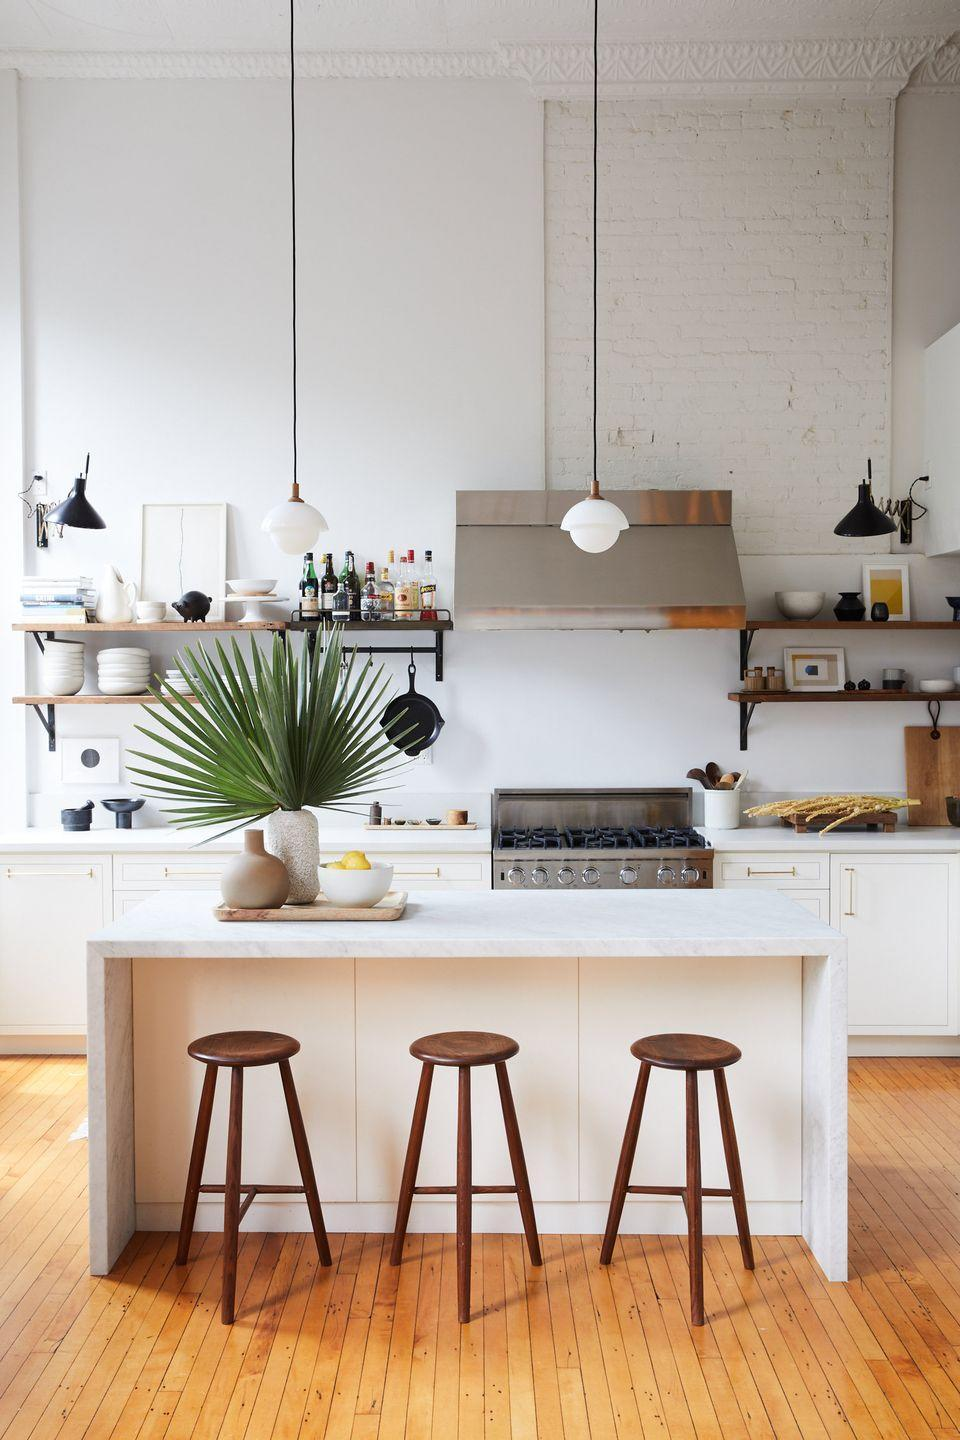 <p>The exposed brick walls add an undone, laid-back feel to this kitchen. Instead of covering them up or refinishing them, let your original architectural details stand out. </p>